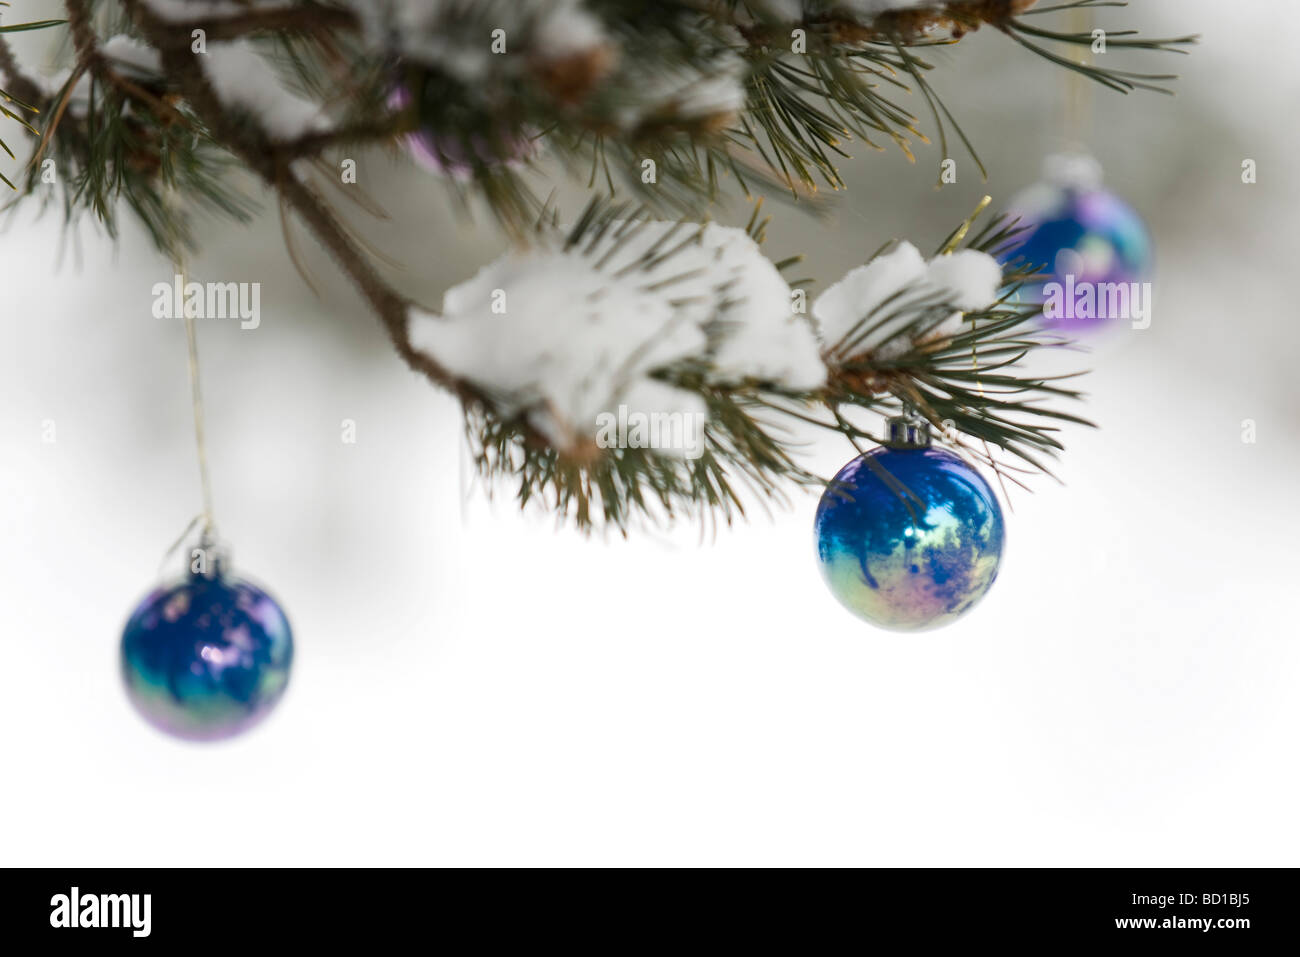 Christmas ornaments hanging from tree branch dusted with snow - Stock Image